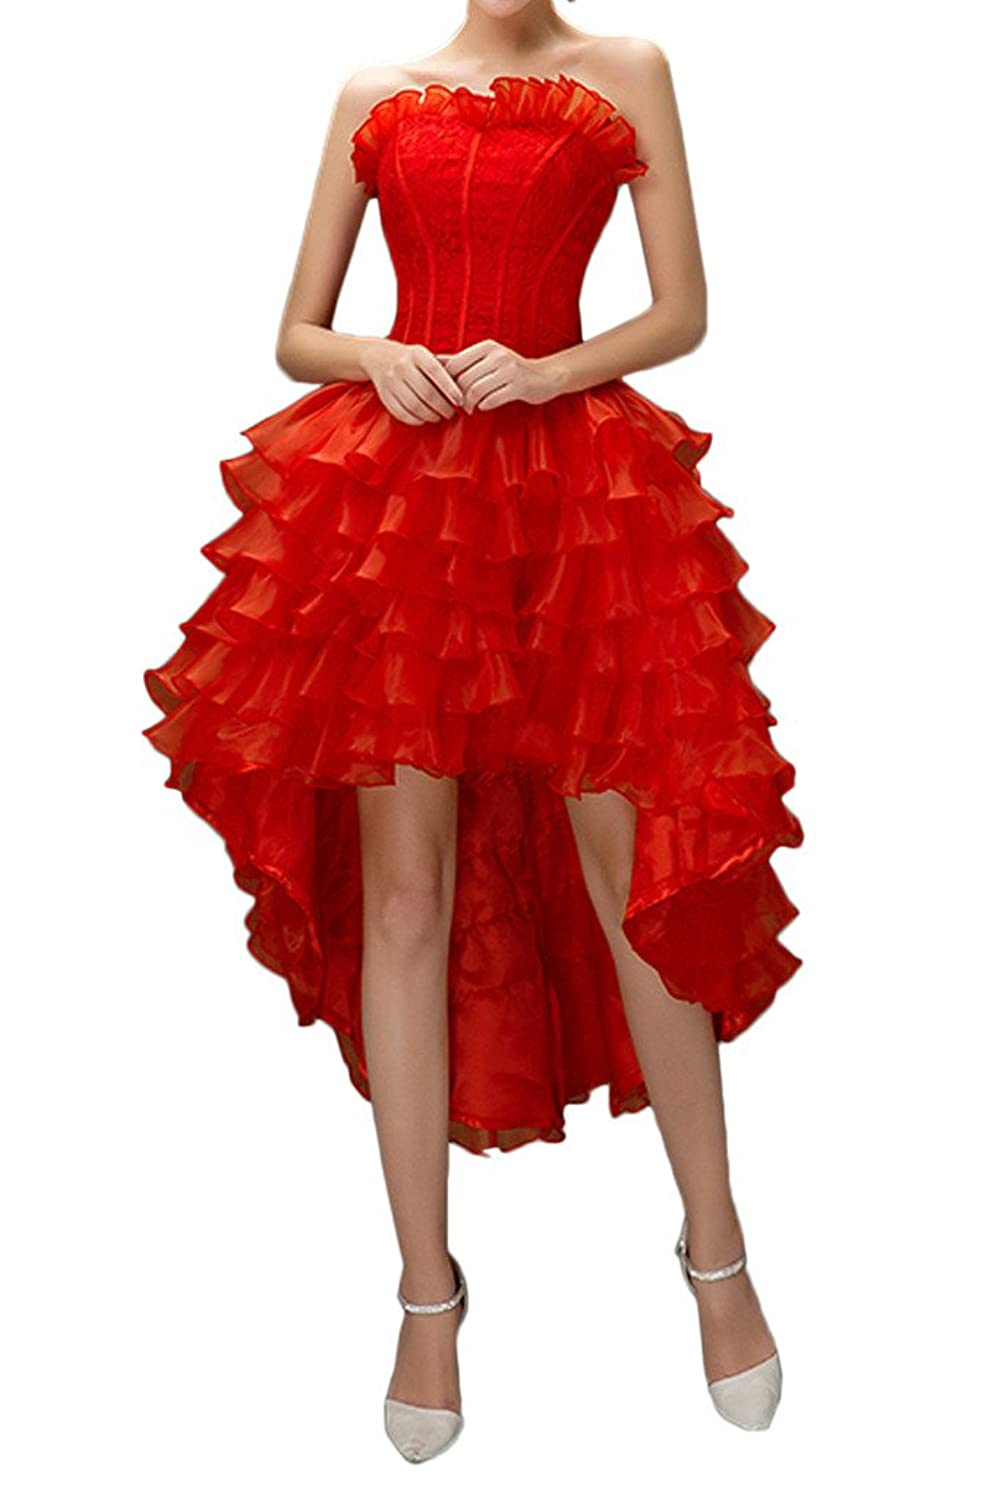 Gorgeous Bride Red Organza Hi-lo Cocktail Prom Dress Layers Bandage